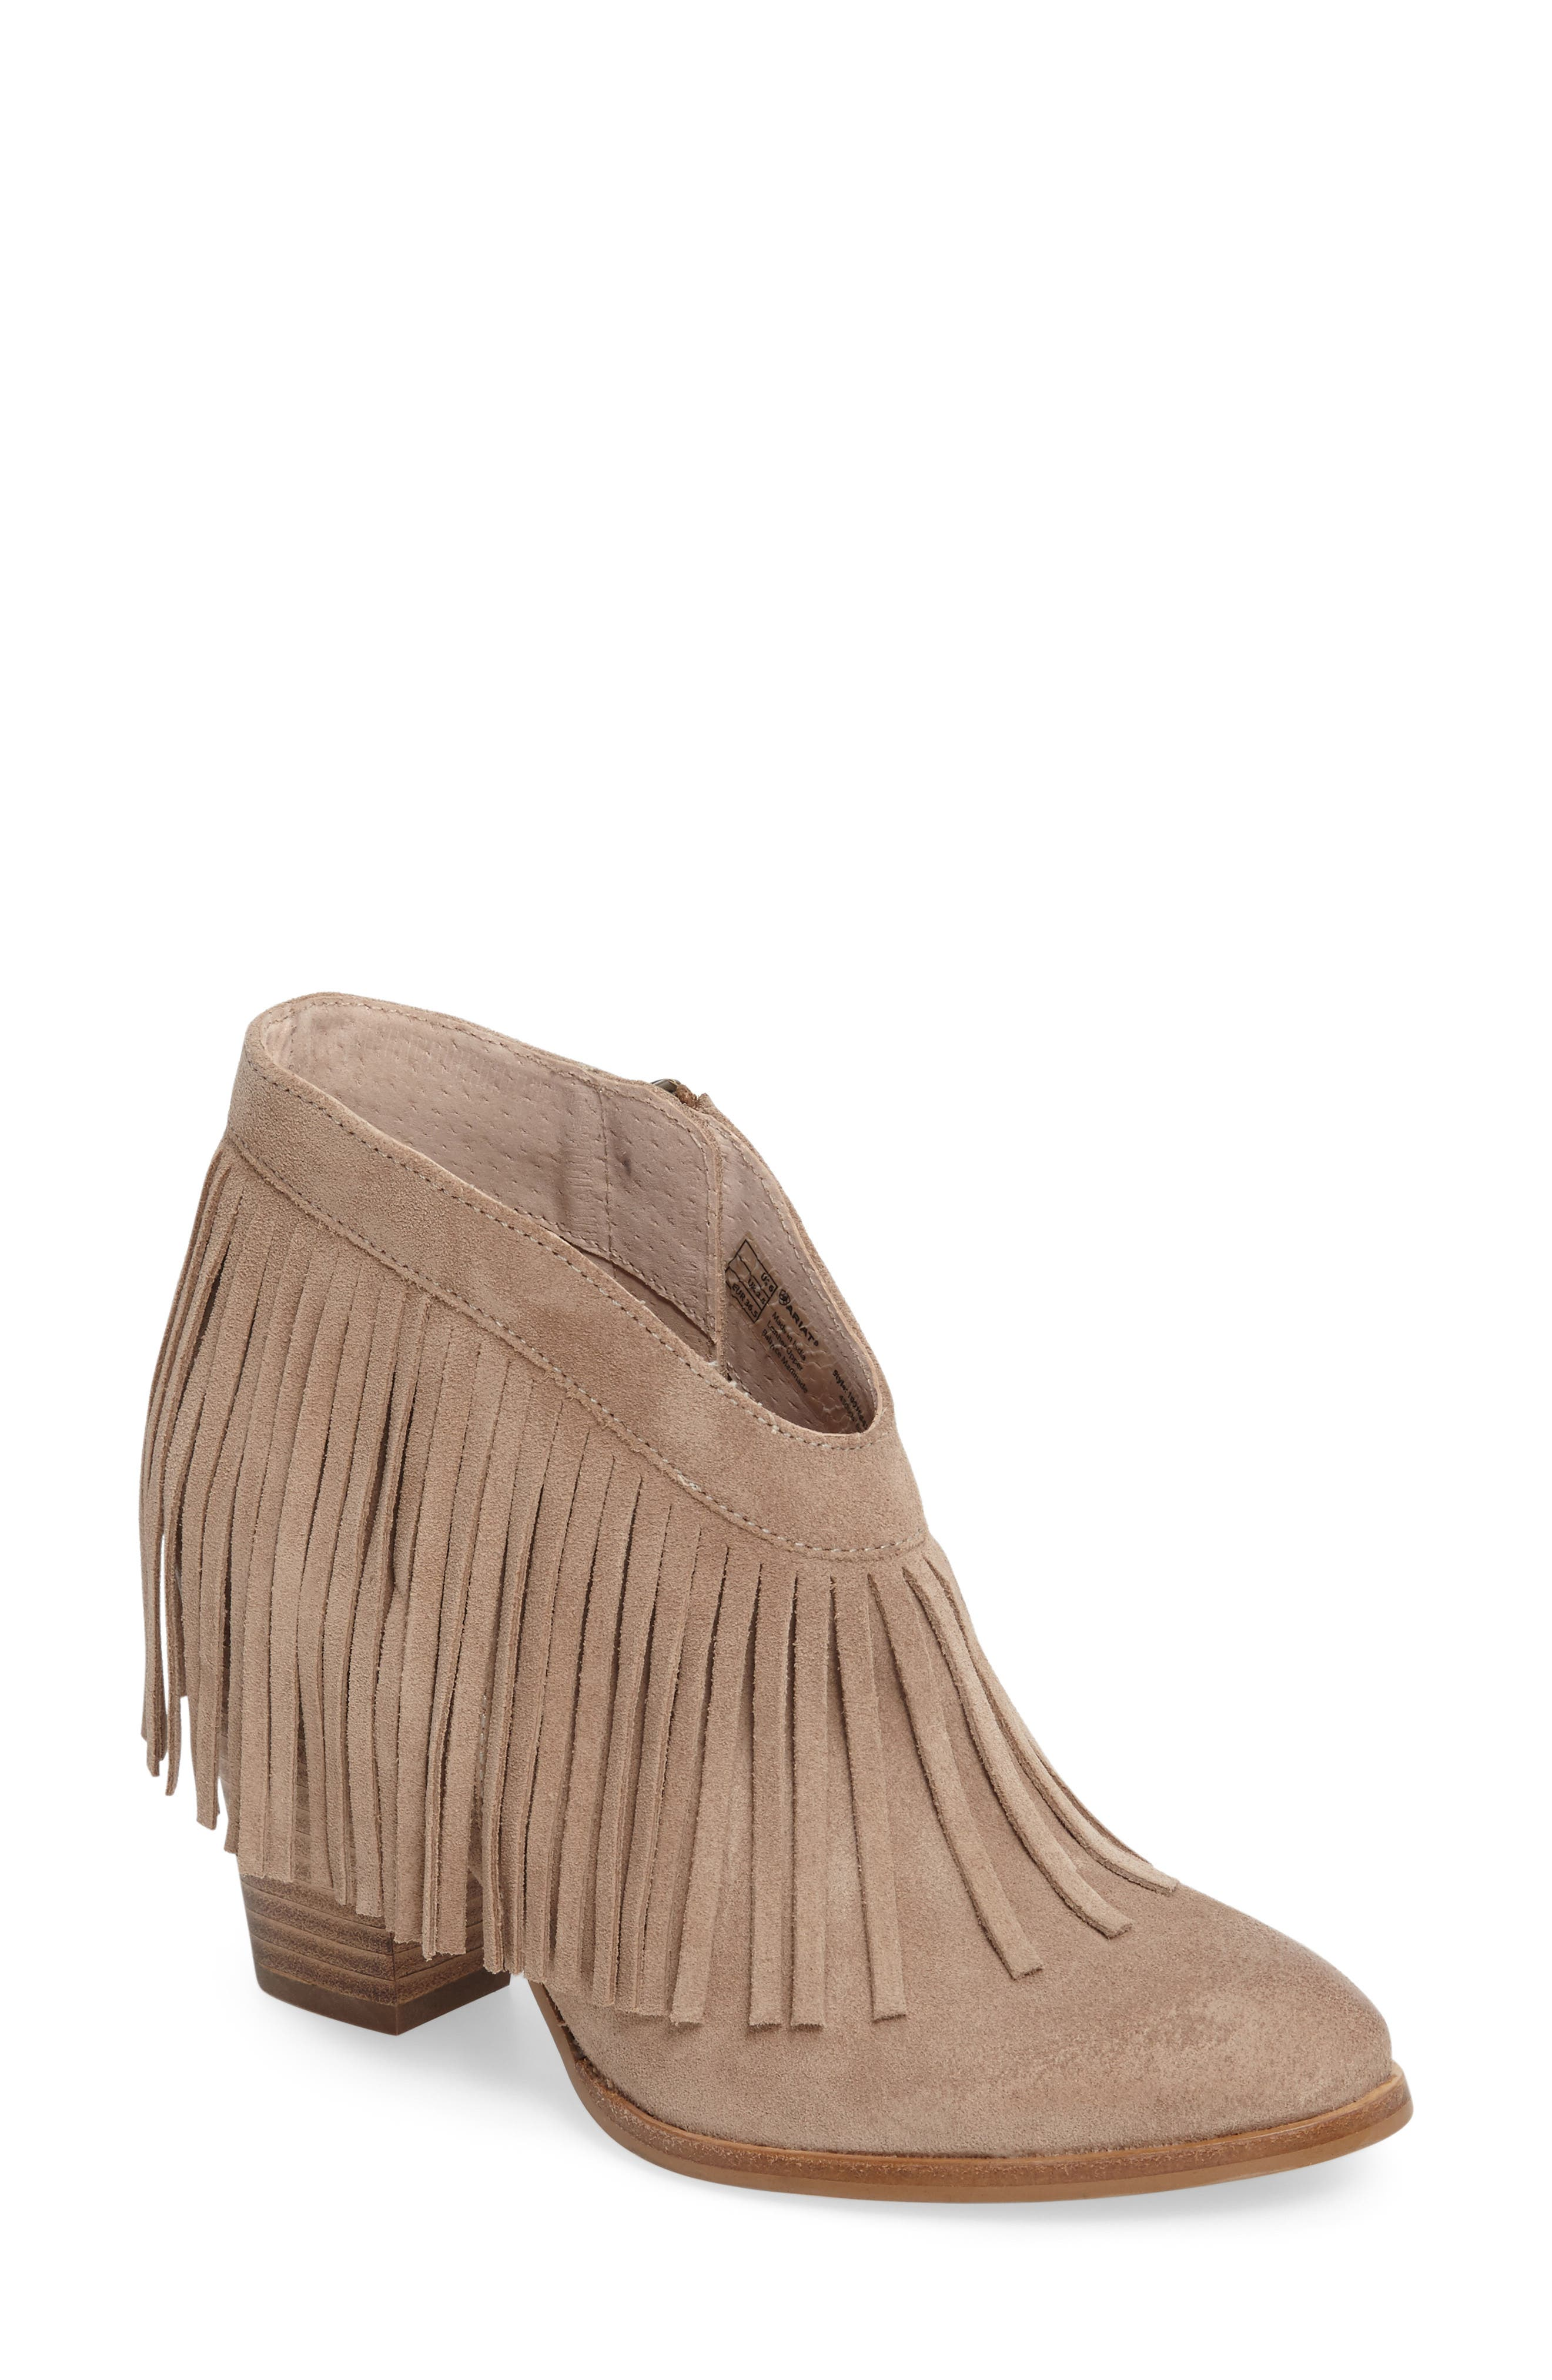 Unbridled Layla Fringed Bootie,                         Main,                         color, Sand Suede